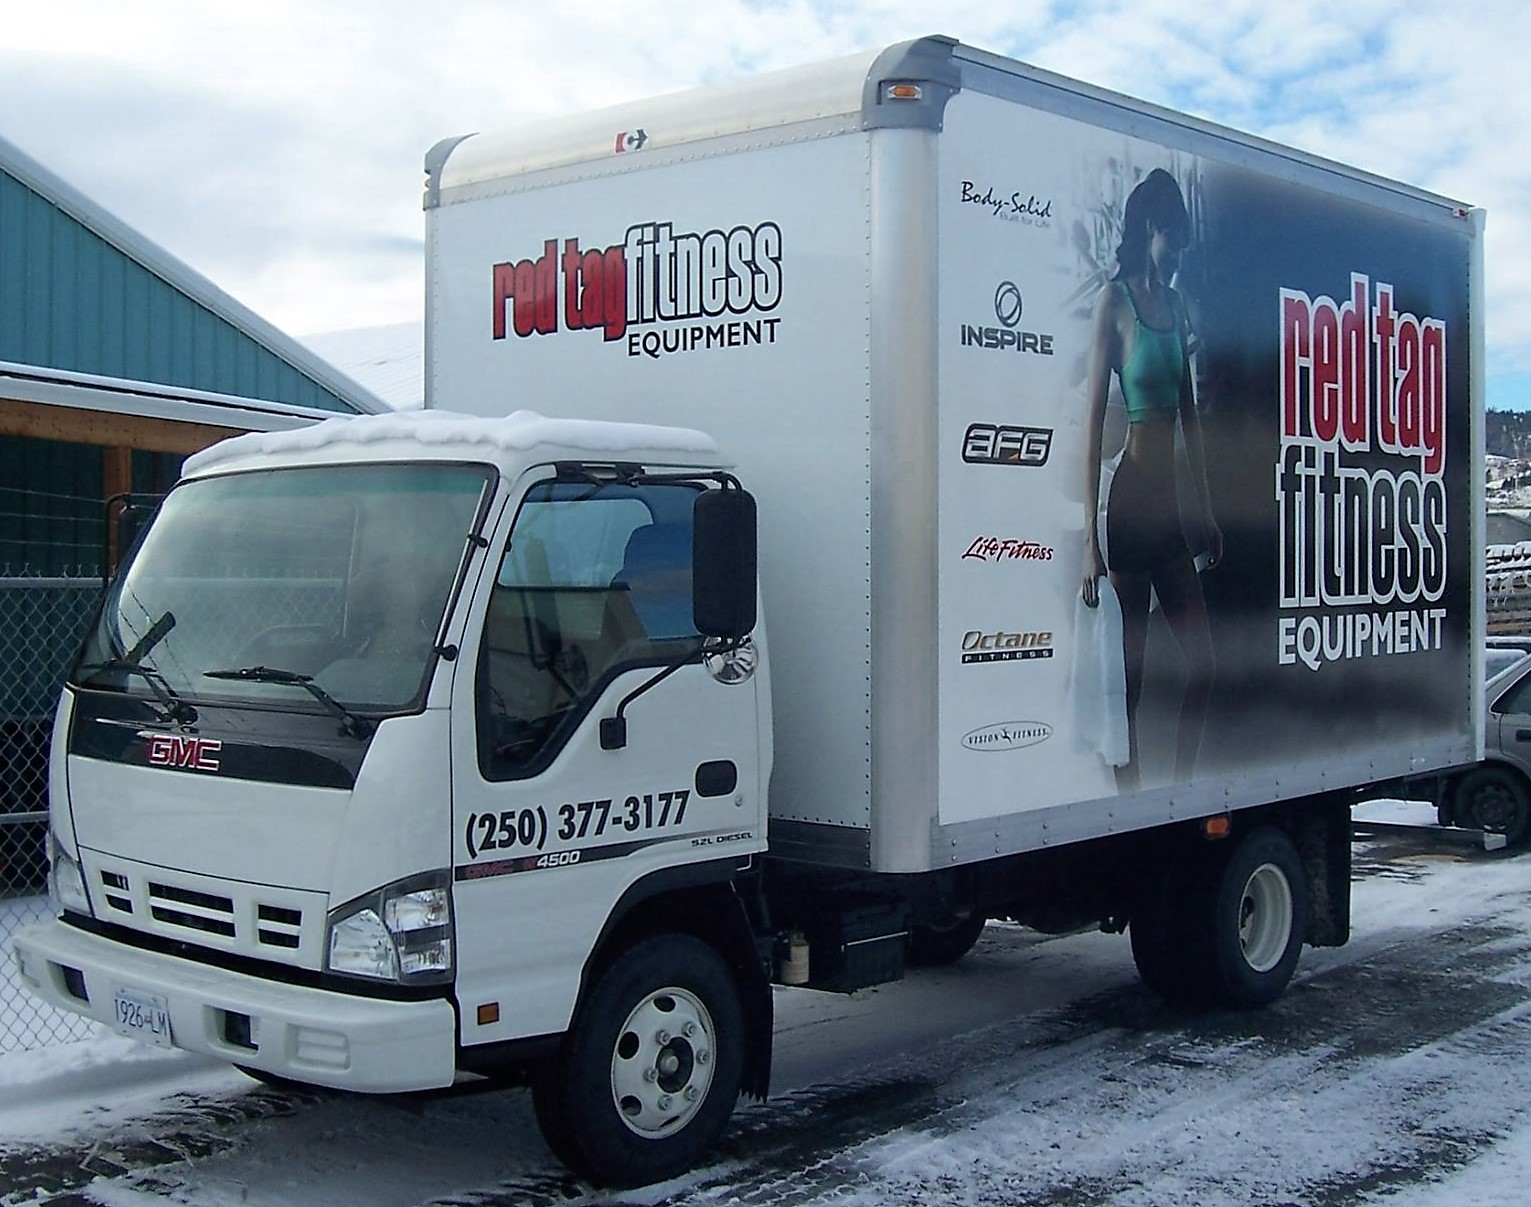 Red Tag Fitness Delivery Truck